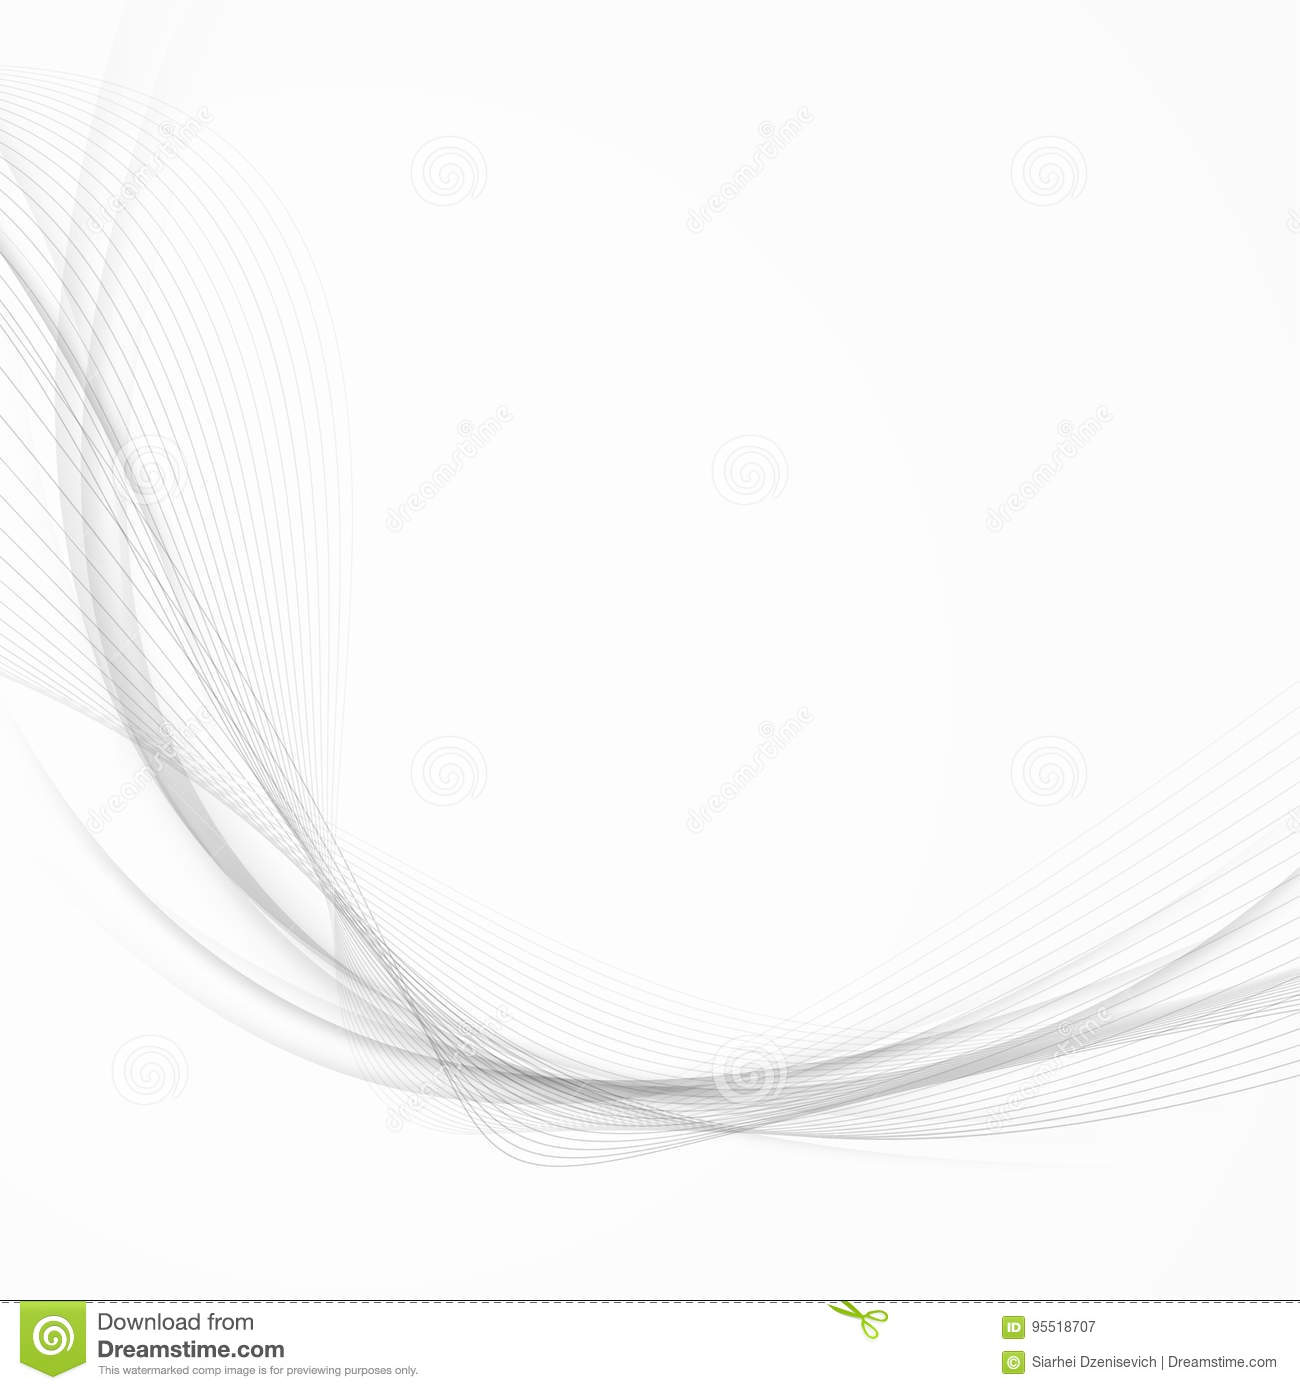 Abstract Modern Halftone Border Swoosh Lines Certificate Layout